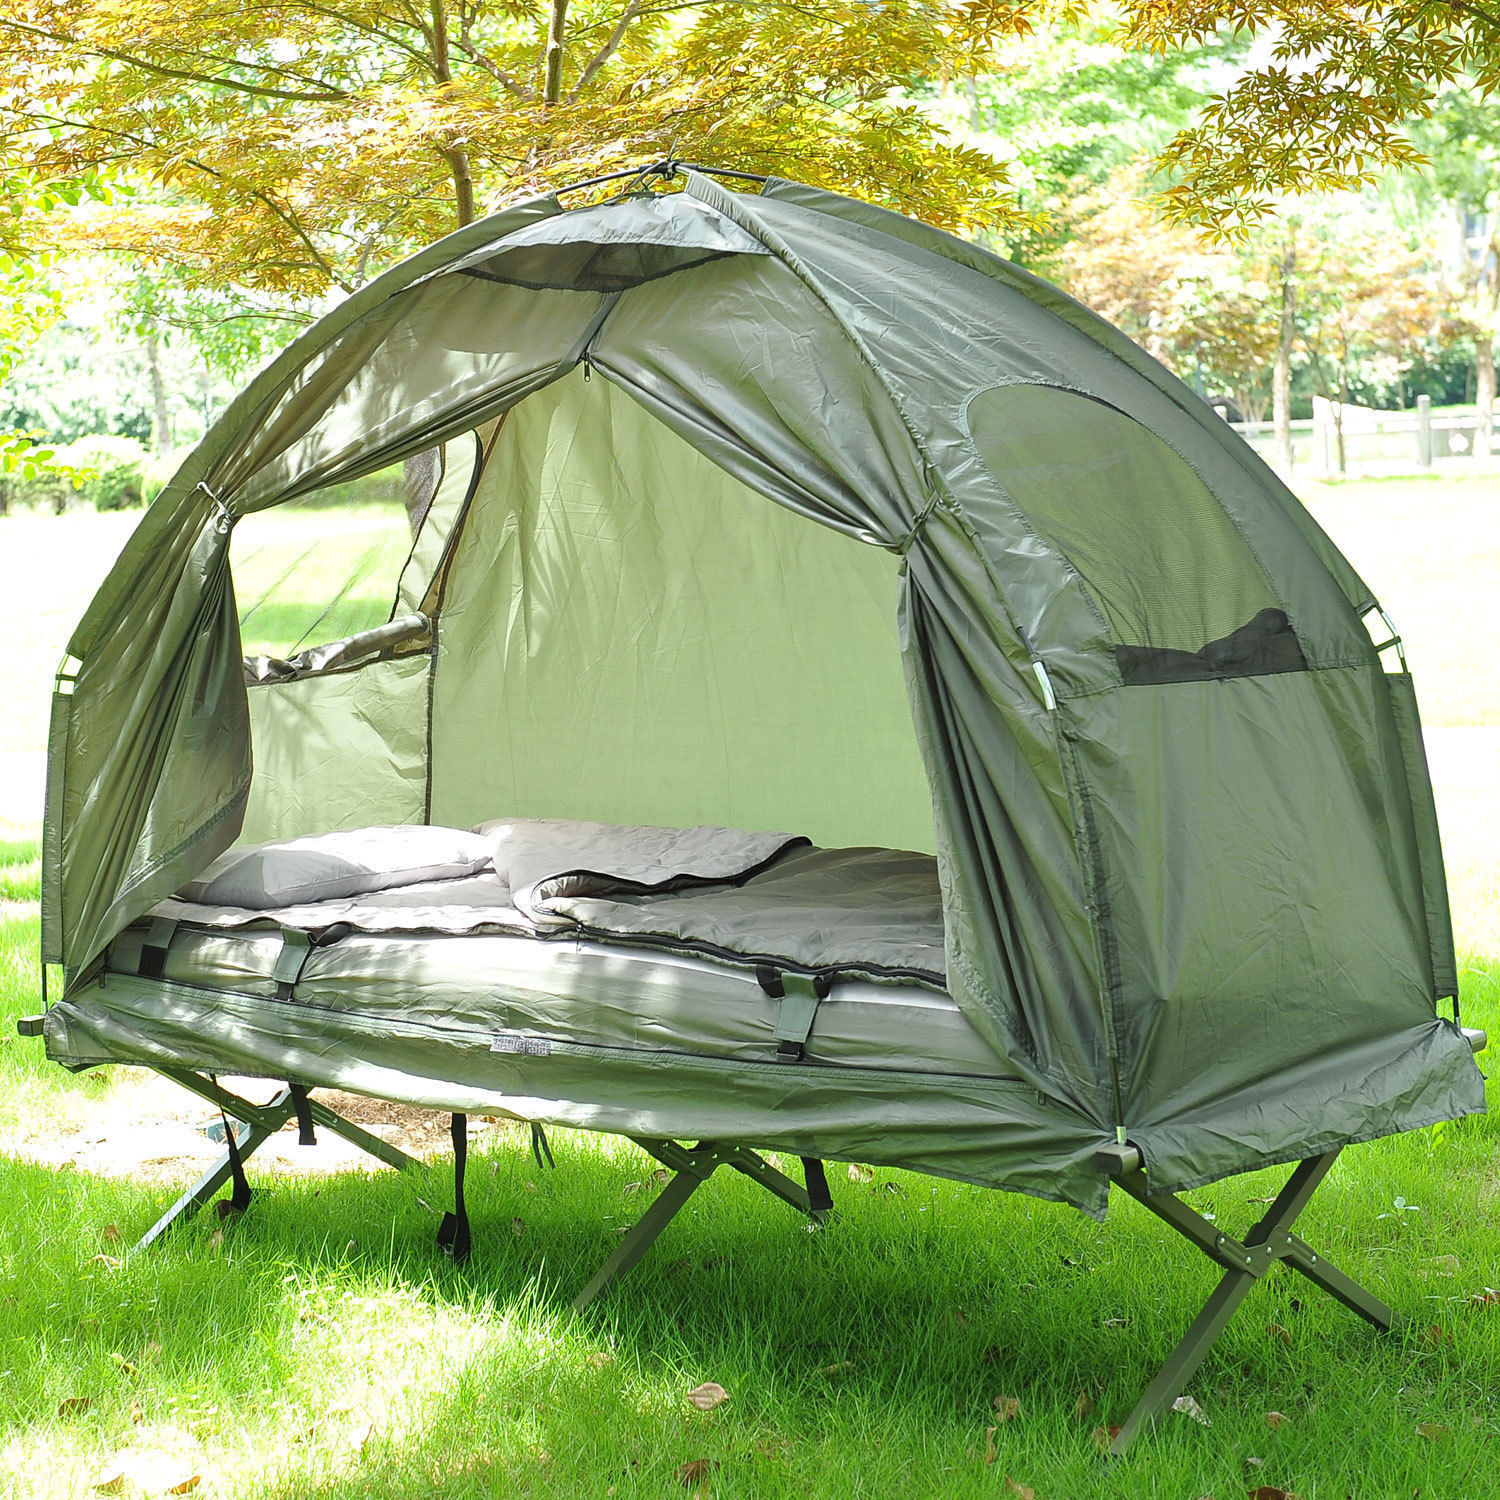 Outdoor One Person Folding Dome Tent Hiking Camping Bed Cot W Sleeping Bag New 5055974816312 Ebay